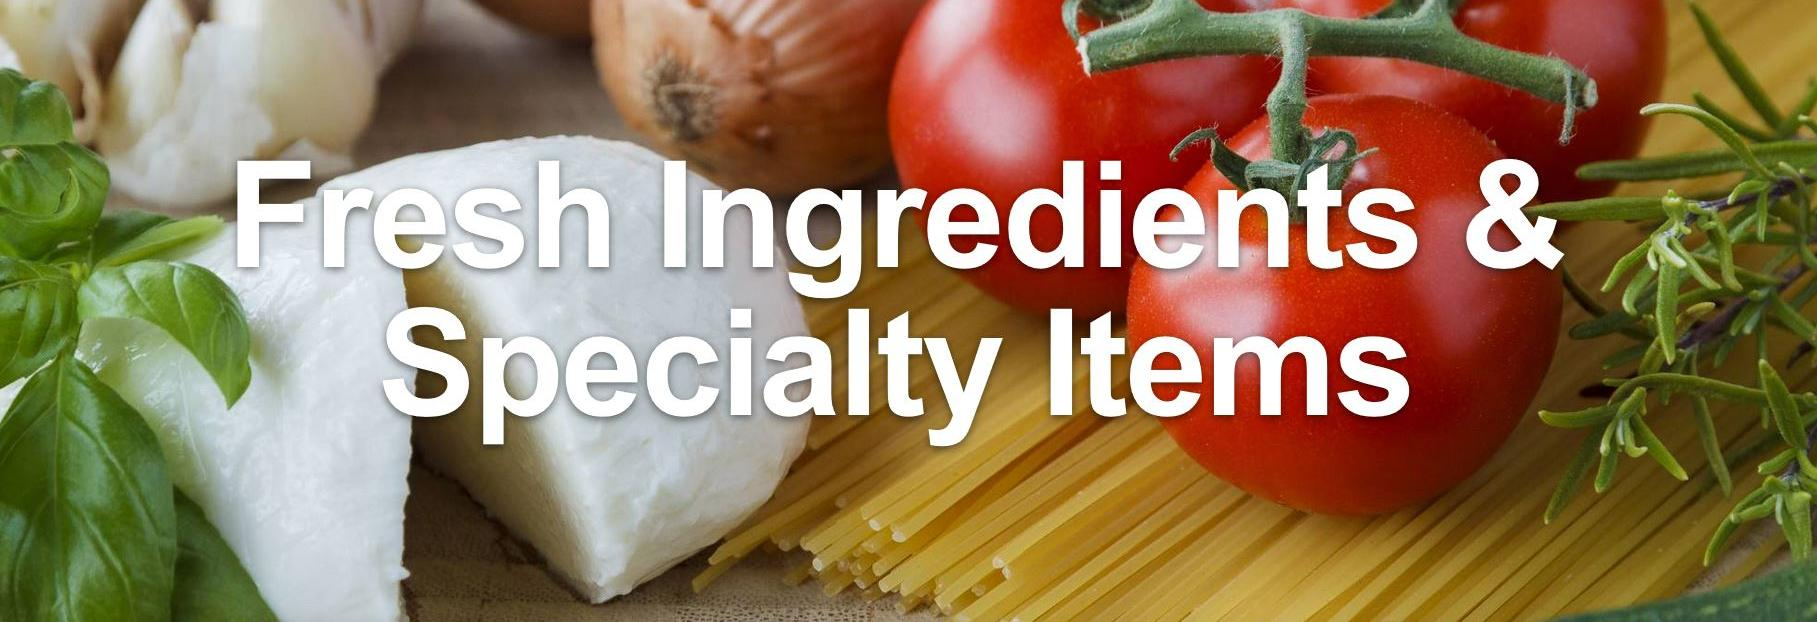 meats, cheese, pasta, near me, Italian ingredients, itialian food near me, food near me